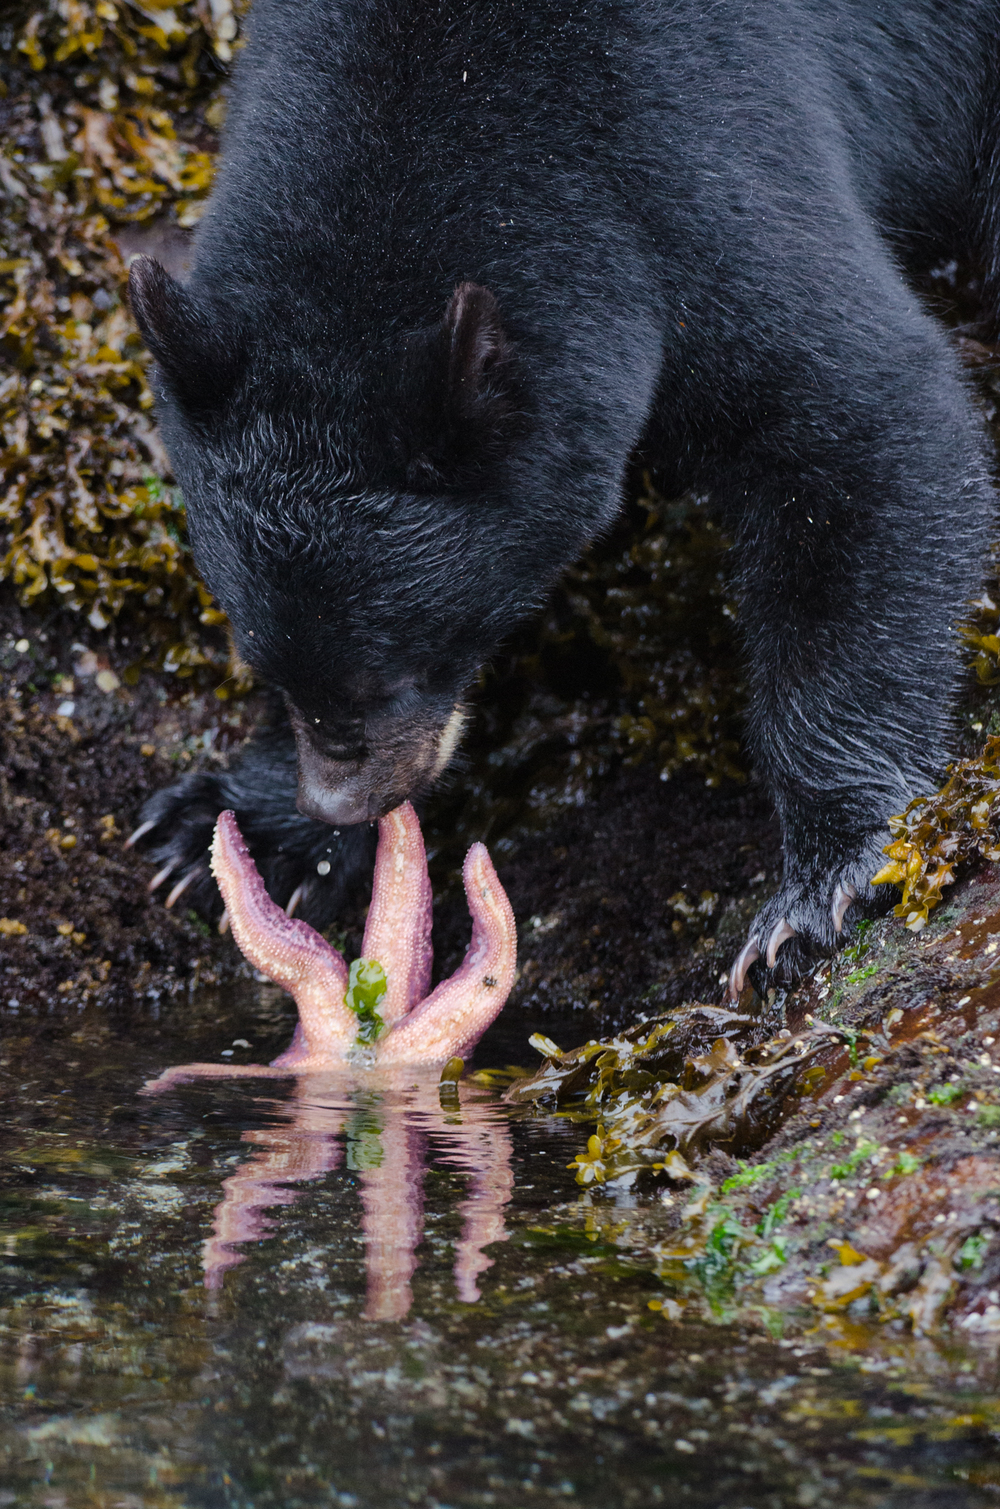 A yearling black bear attempts to eat an inedible starfish.